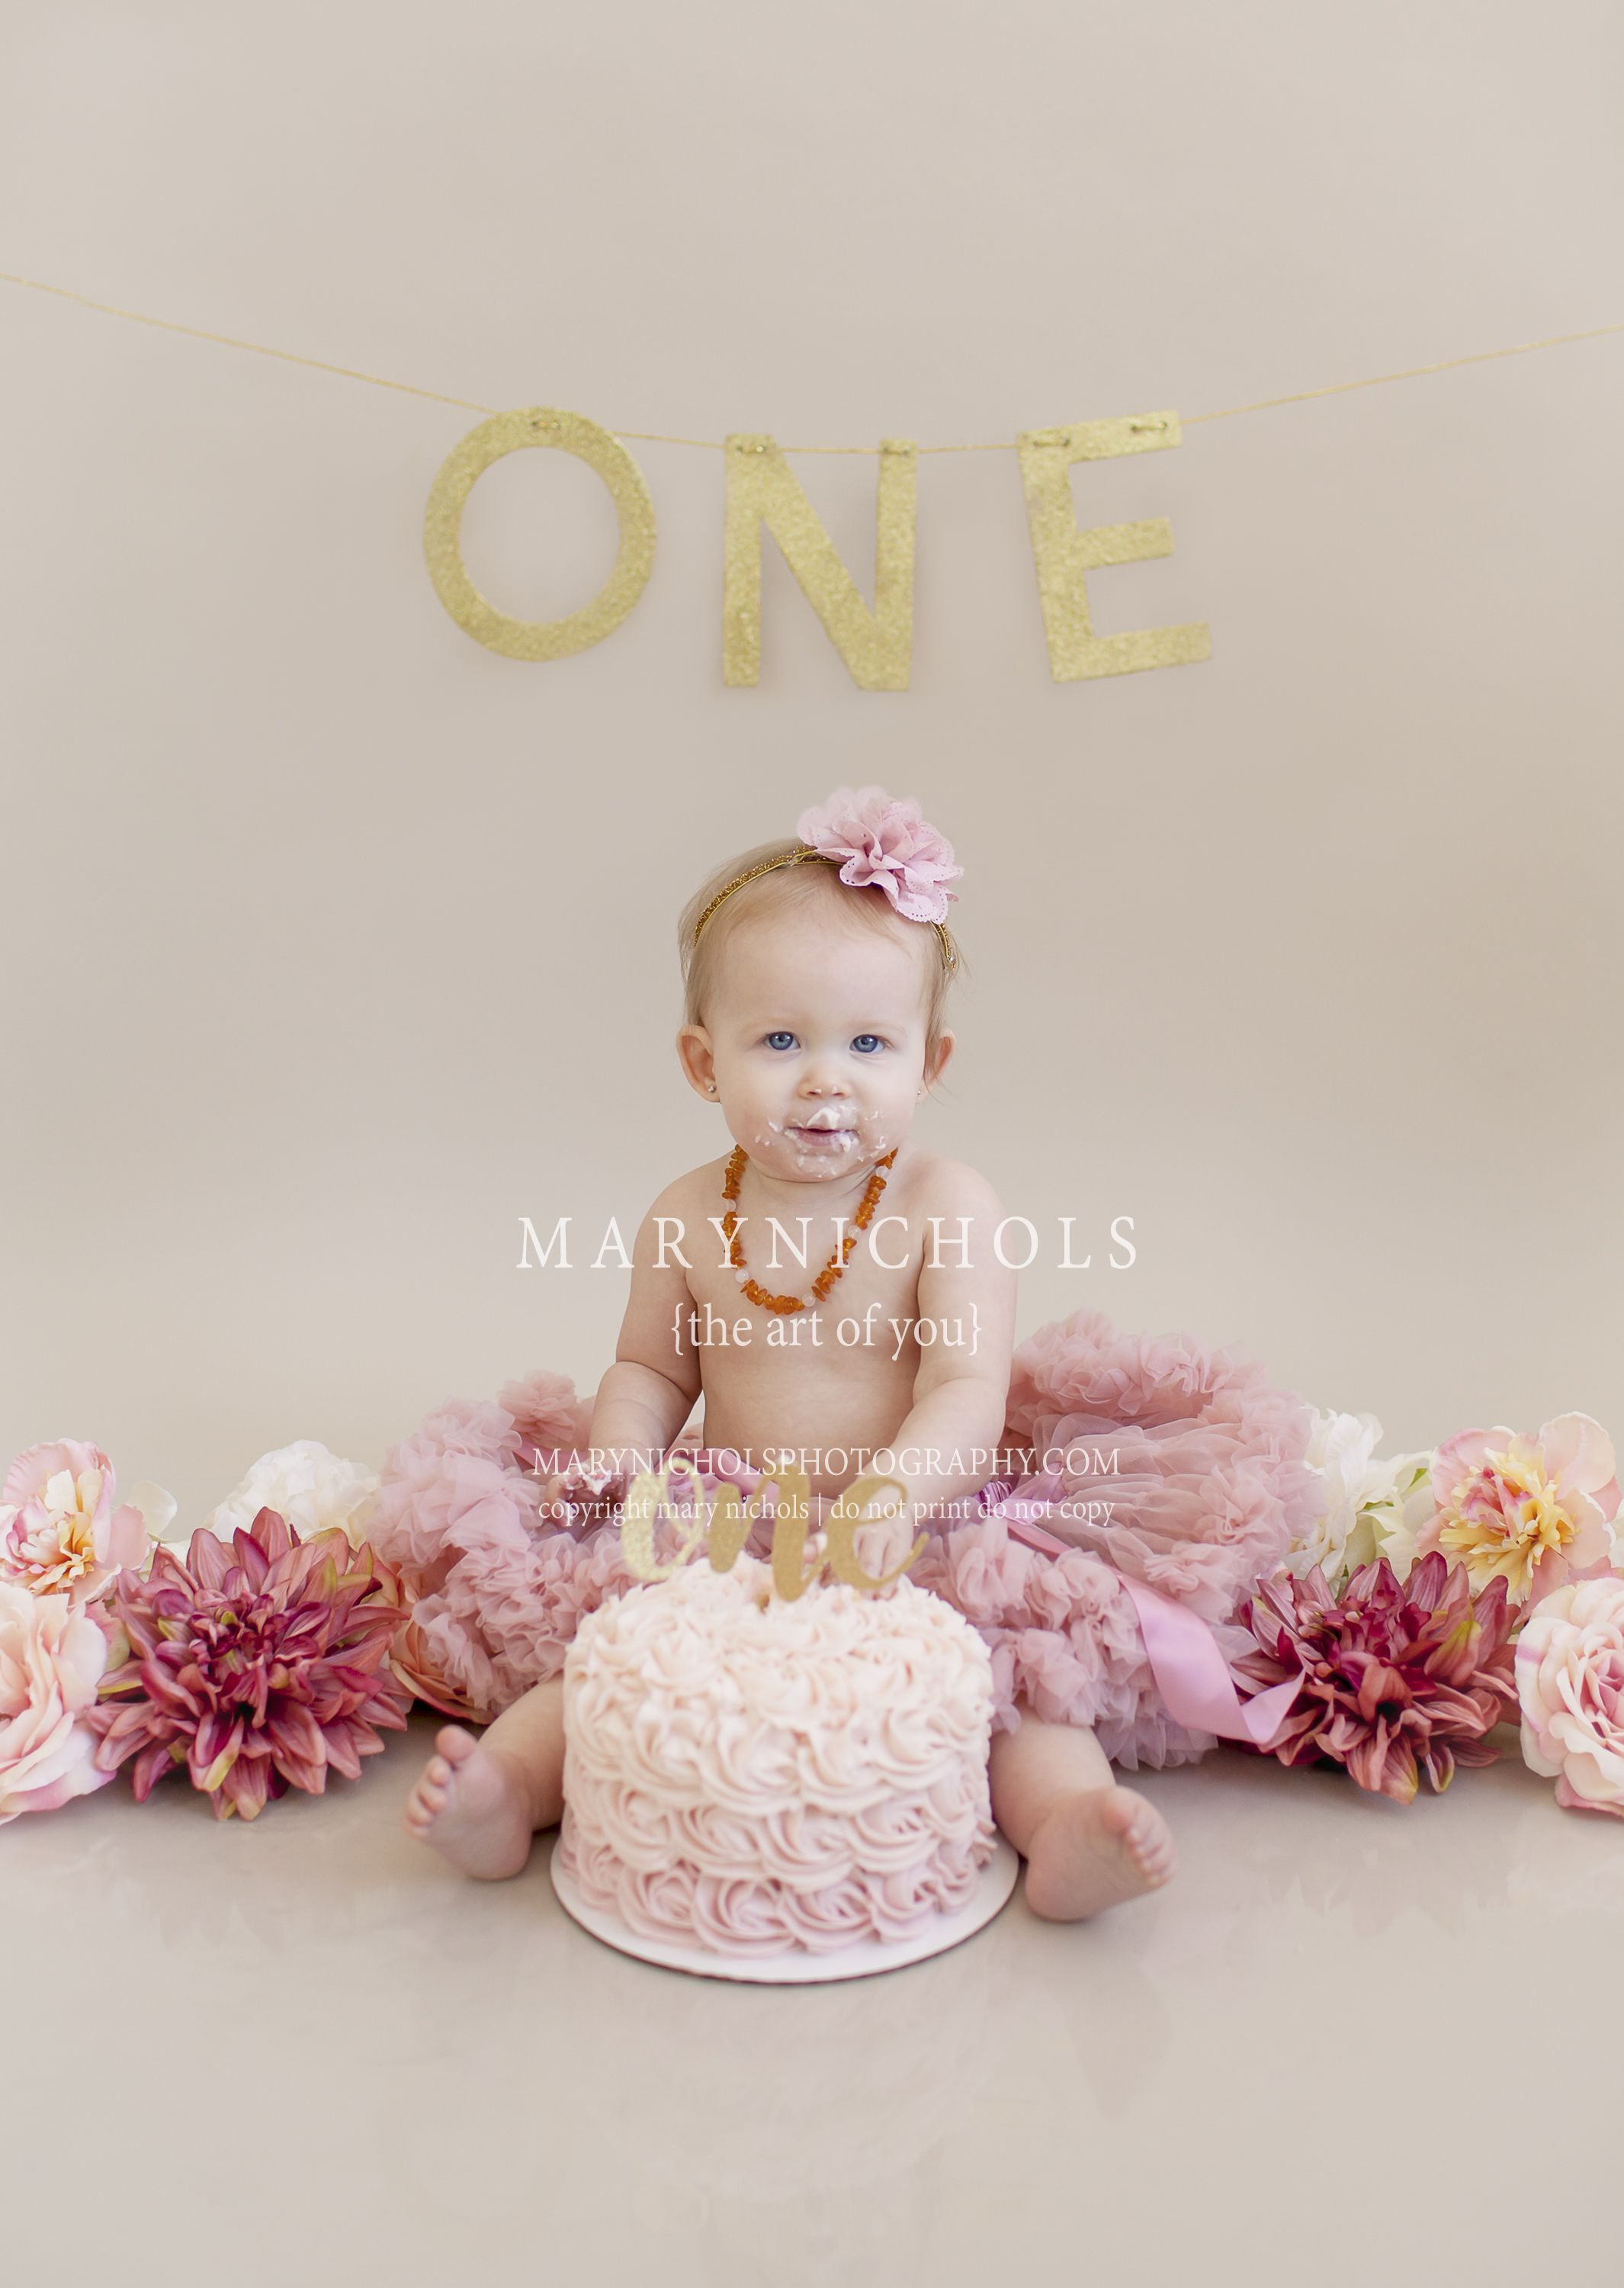 Click For More Tips Cake Smash Picture Ideas Outdoor Indoor Donut Winter Diy Outfit Fall Summer Cake Smash Backdrop Girl Birthday Birthday Cake With Flowers